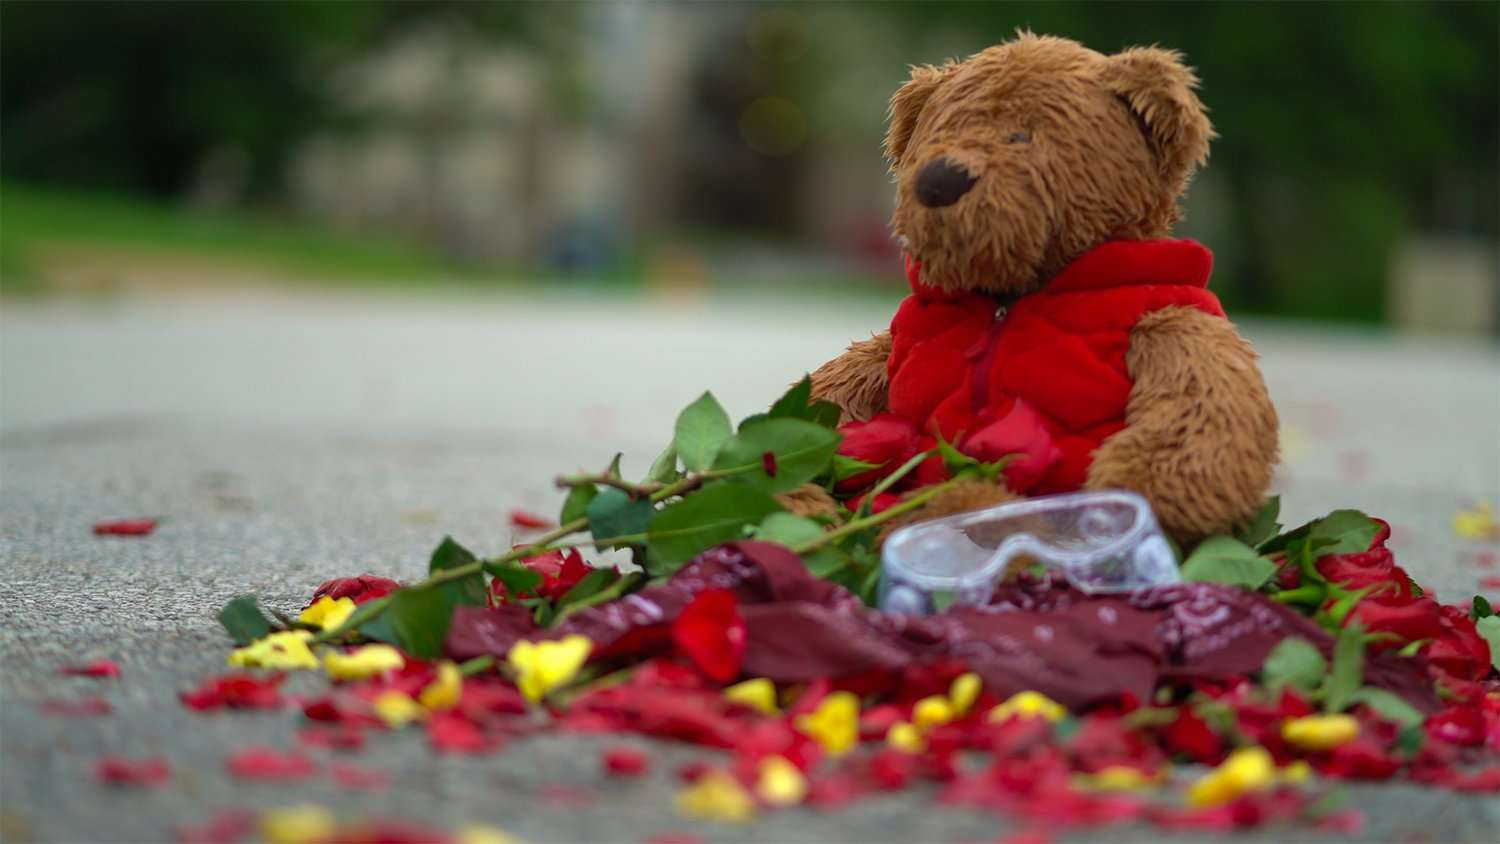 Teddy Bear at Michael Brown's Street Memorial on Canfield Dr on July 31, 2020. credit craig currie